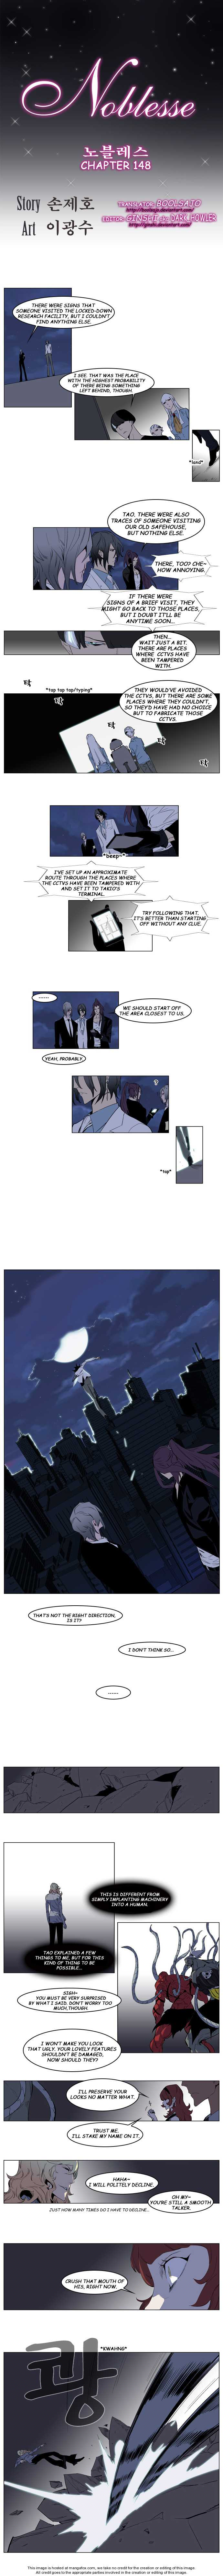 Noblesse 148 Page 1